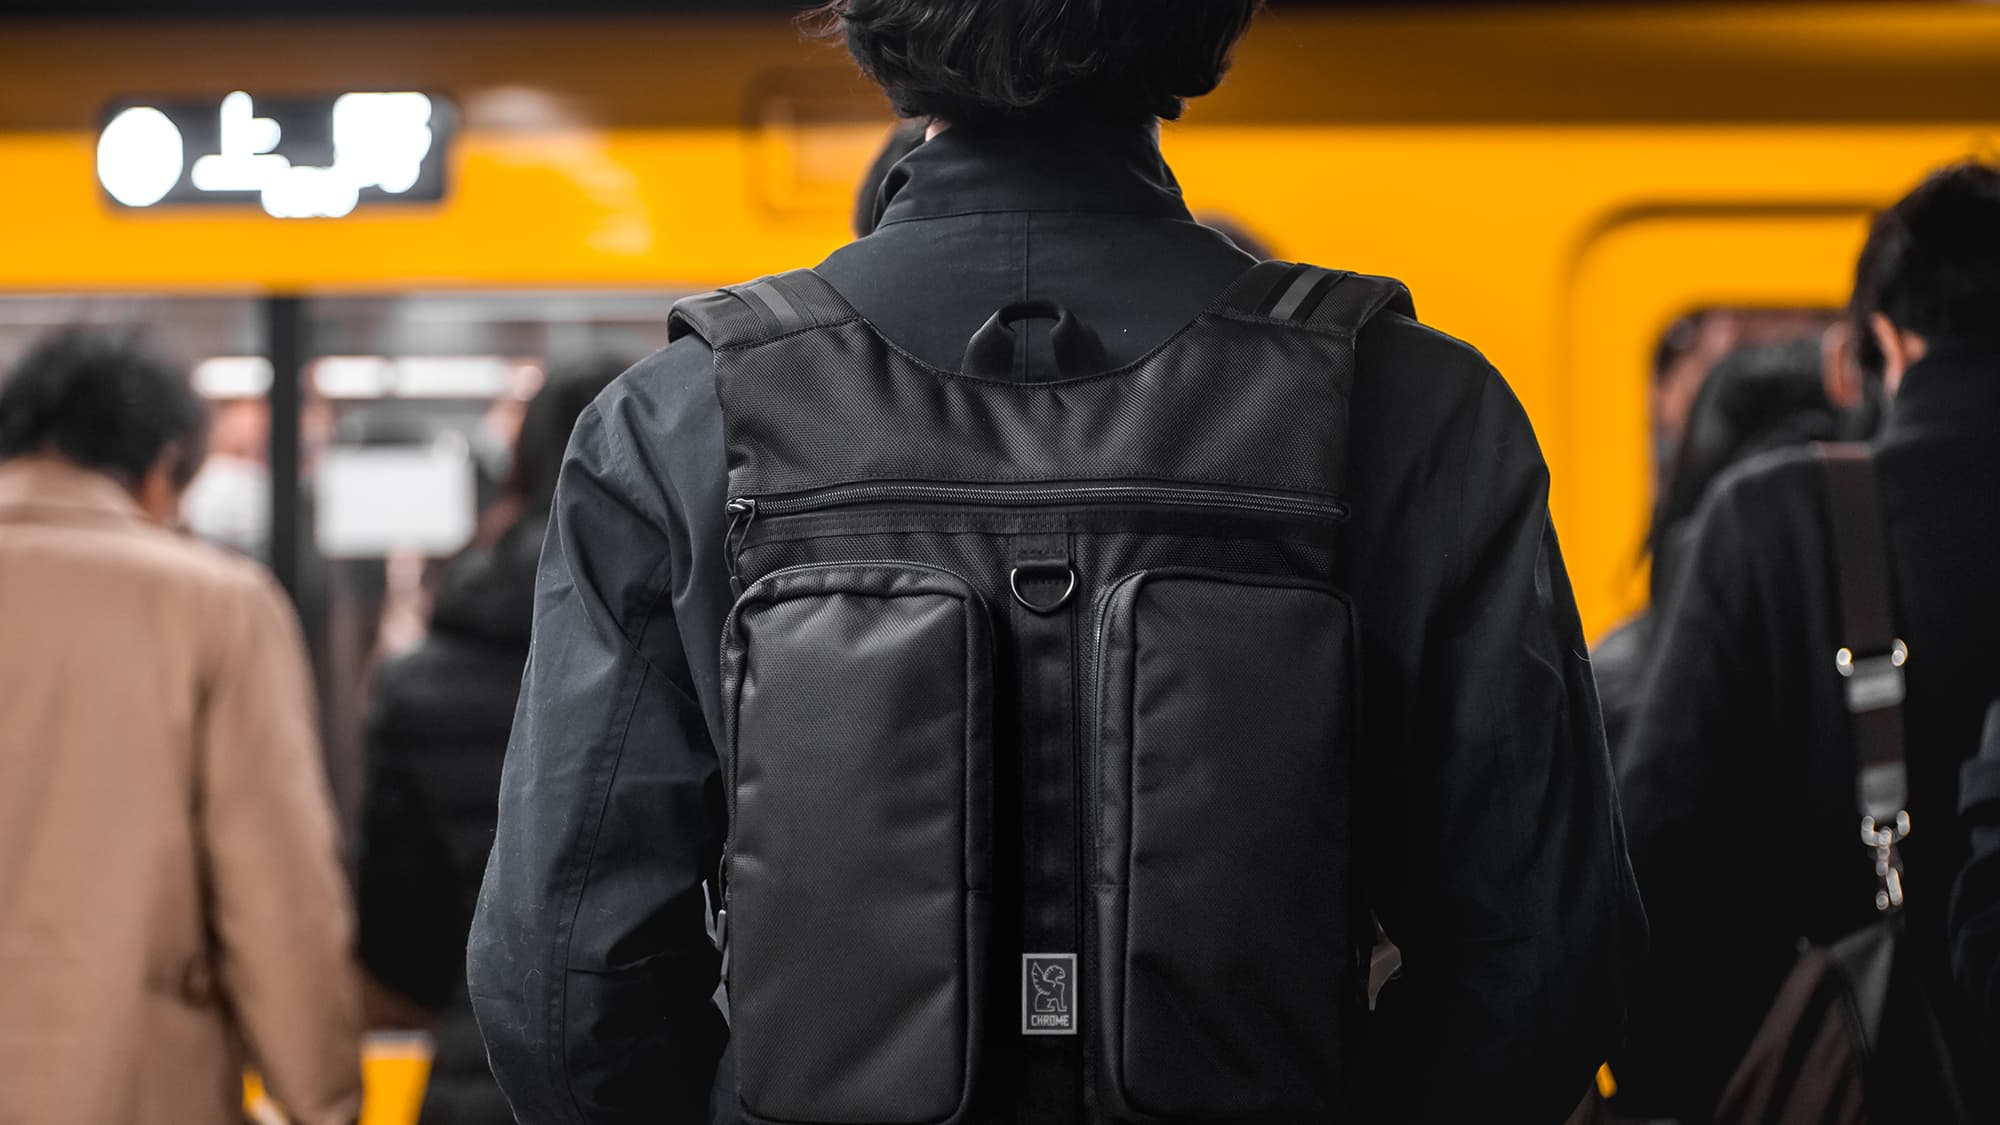 MXD Fathom Backpack, great for commuters